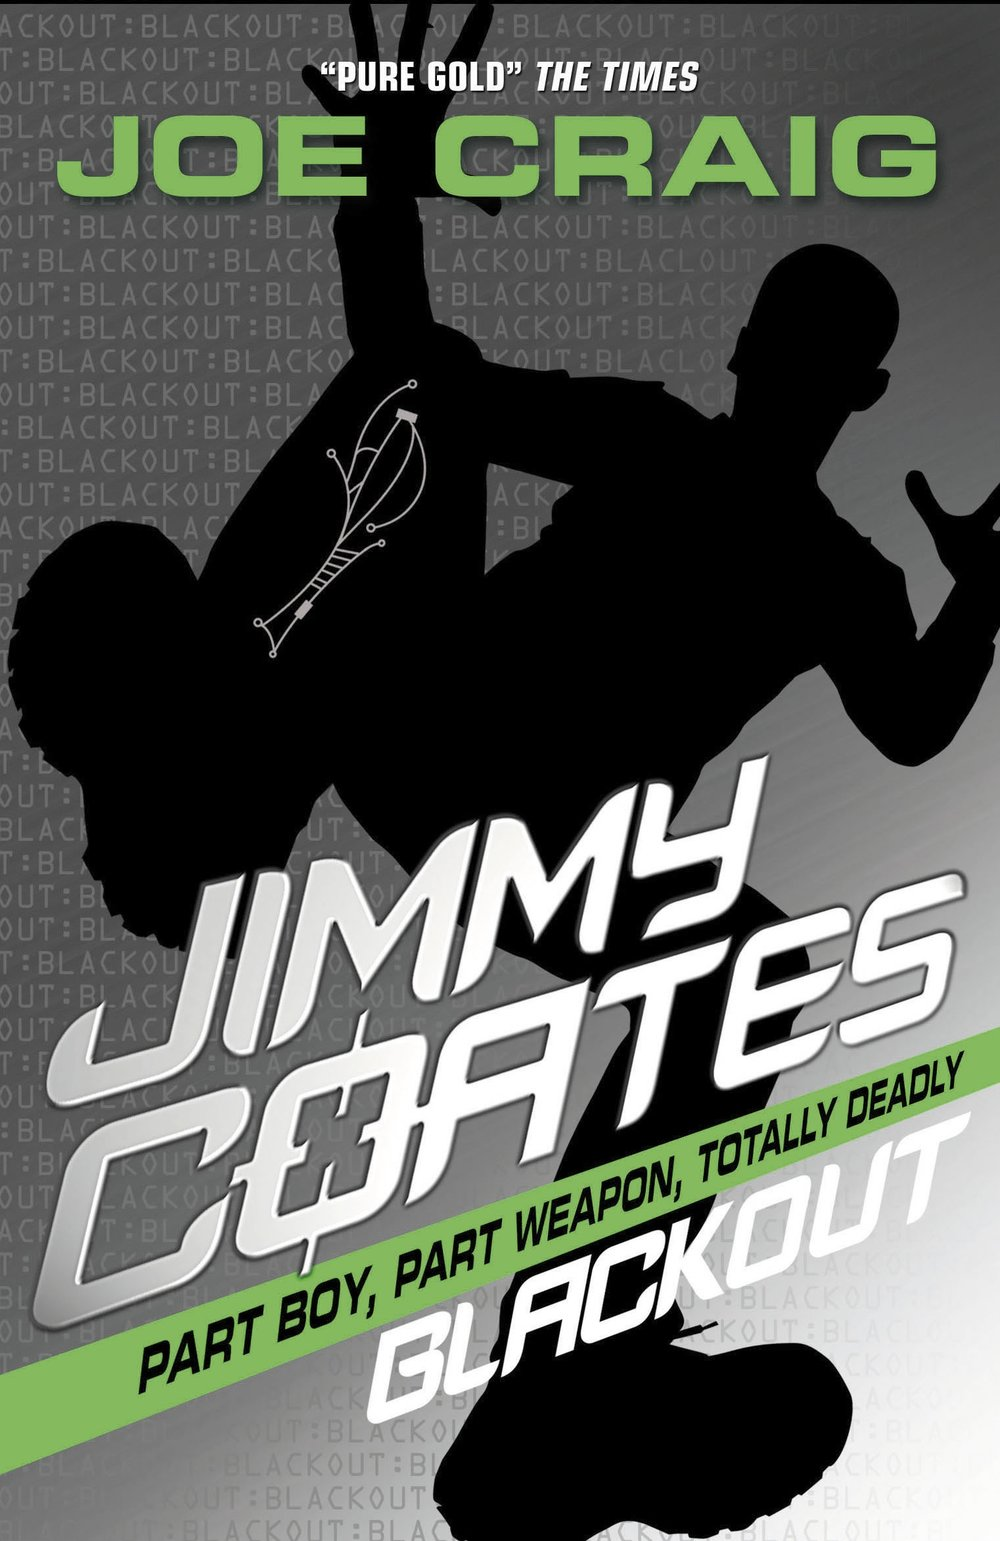 Book 7. Jimmy Coates can only trust one man to bring the country back from the brink of chaos. When that man disappears, Jimmy must battle the shadow of corruption. But the shadows are darker than they seem, and the darkness reaches further than Jimmy could ever imagine.